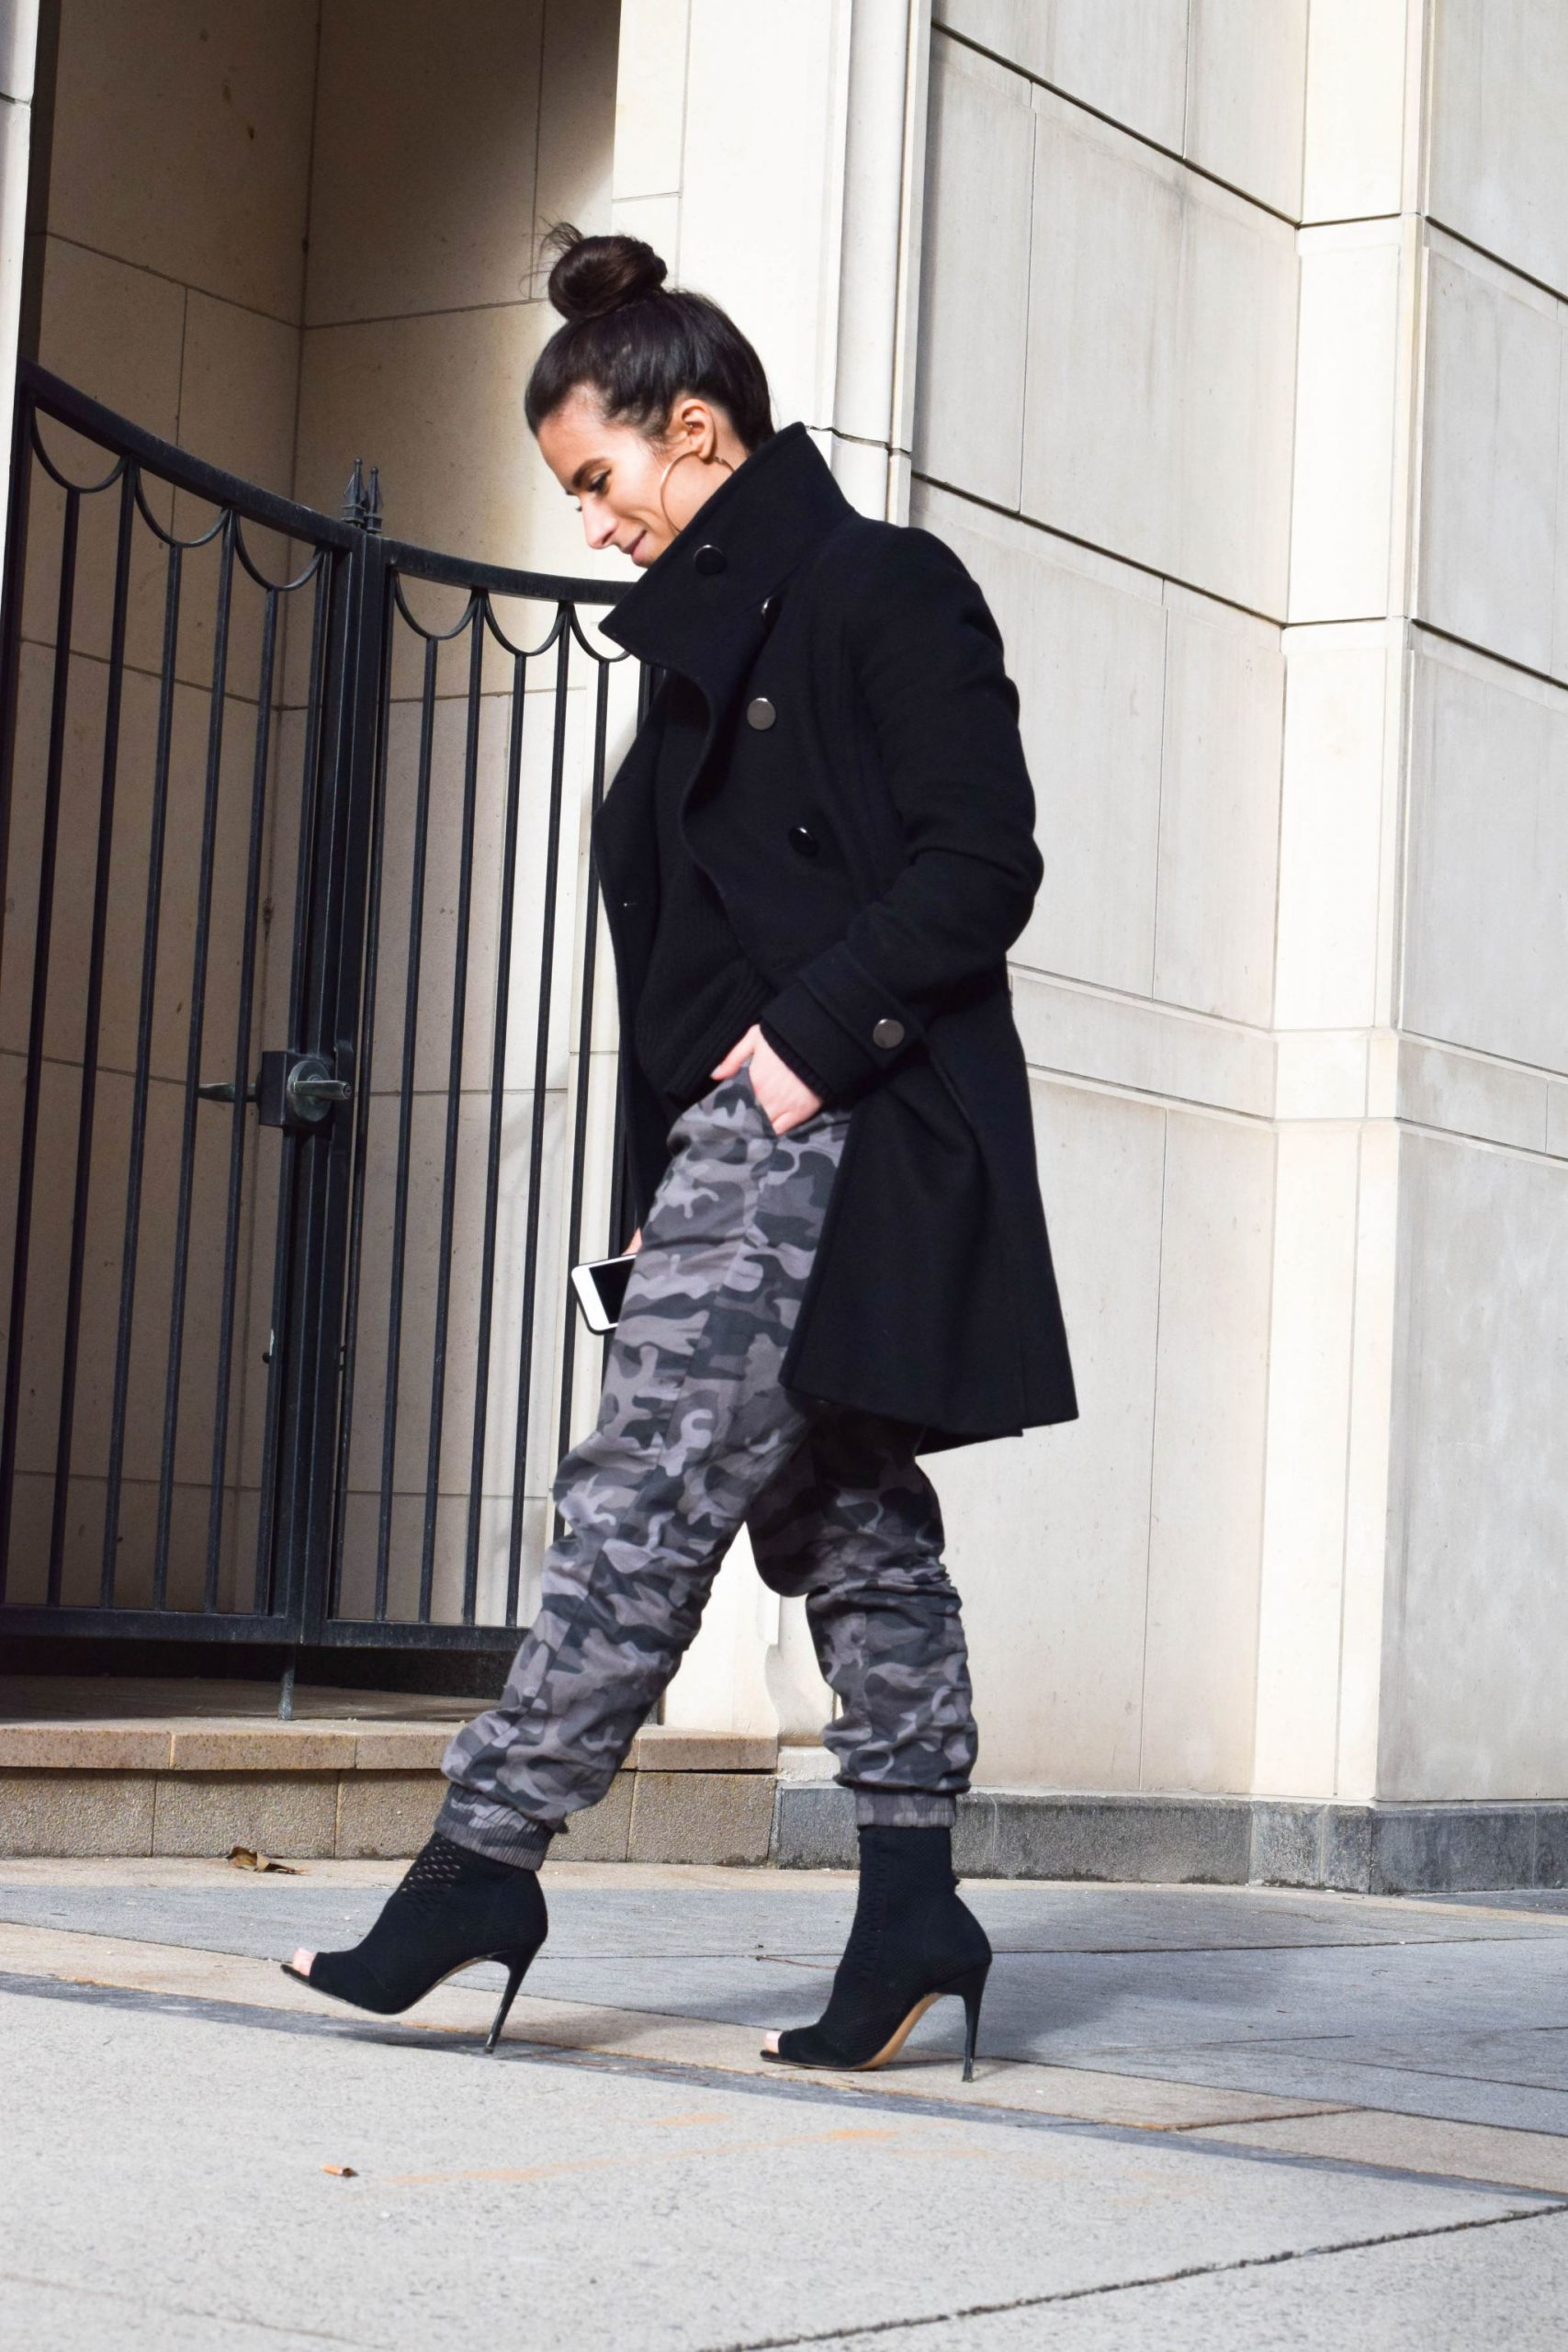 Style: Elevated Camo